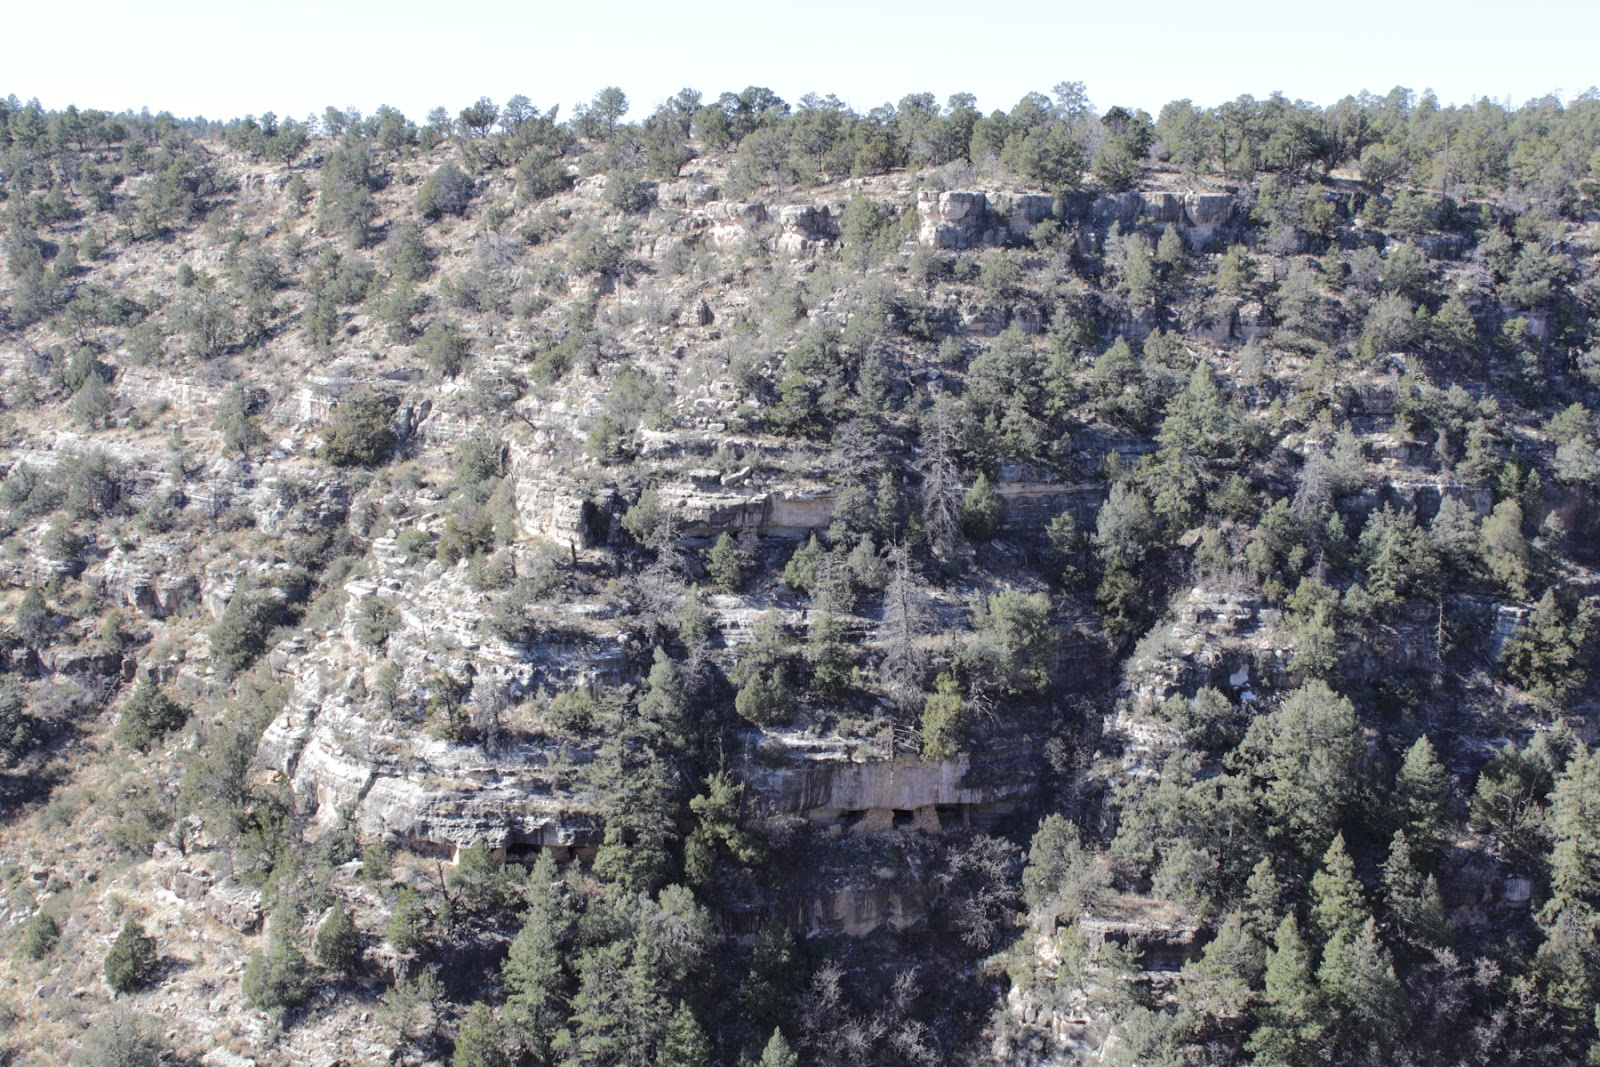 The Sinagua Indians inhabited the cliff dwellings. The Sinagua built their homes under limestone ledges, deep within the canyon, some time between 1125 and 1250 AD. They left mysteriously around the year 1250 for reasons that are still unknown.